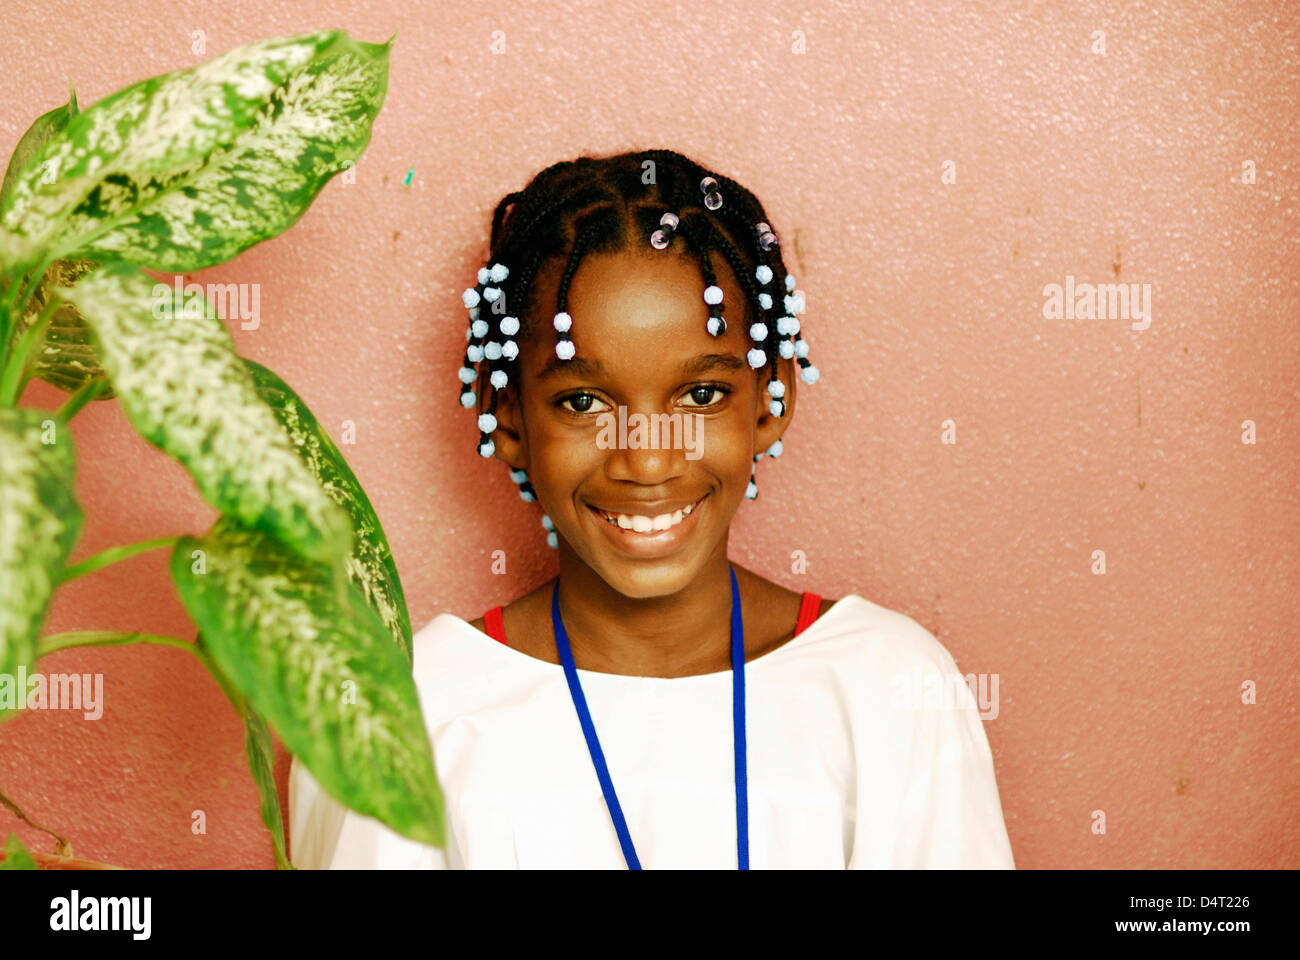 Africa, Angola, Luanda, portrait of an African girl with white beads in her braided hair smiling by a plant. (MR) - Stock Image